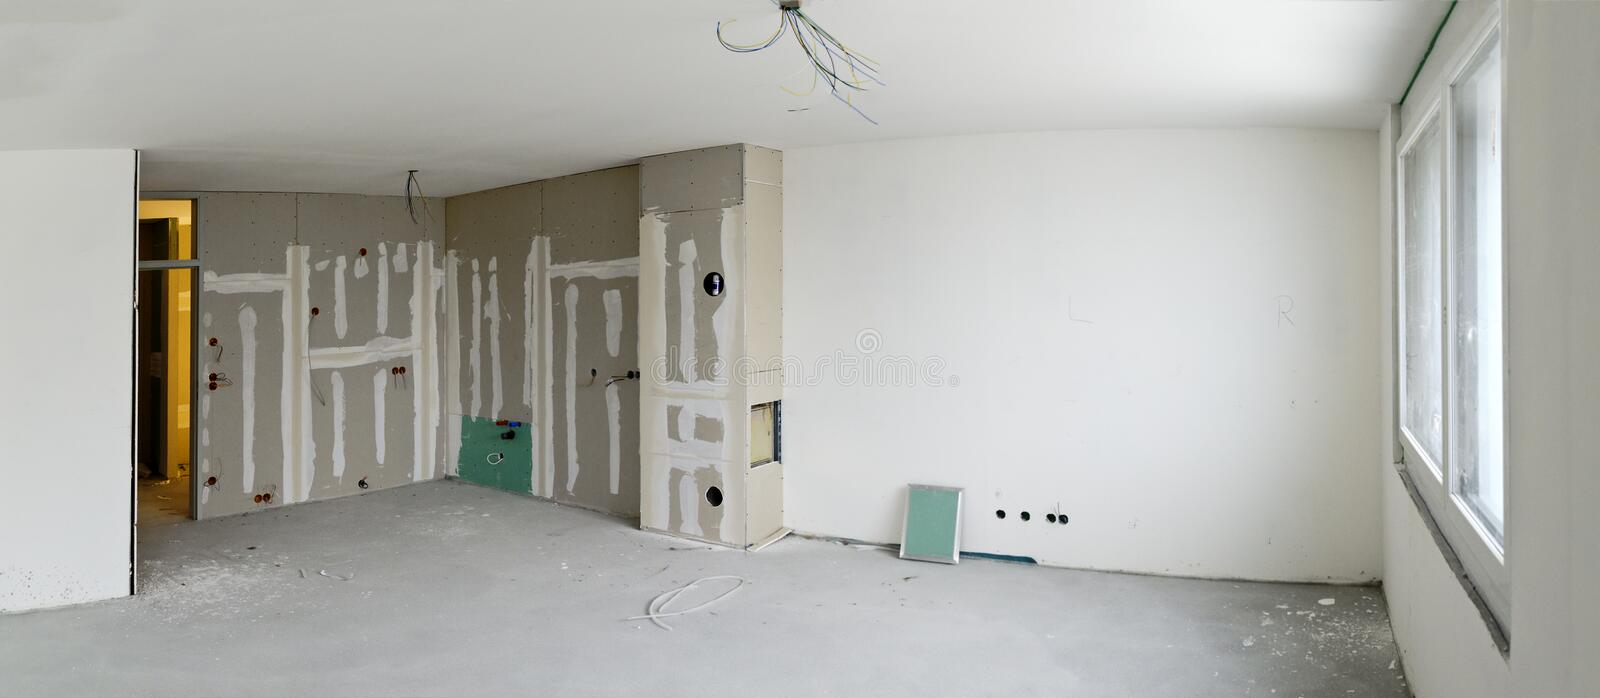 Living room with kitchen corner under construction royalty free stock photography